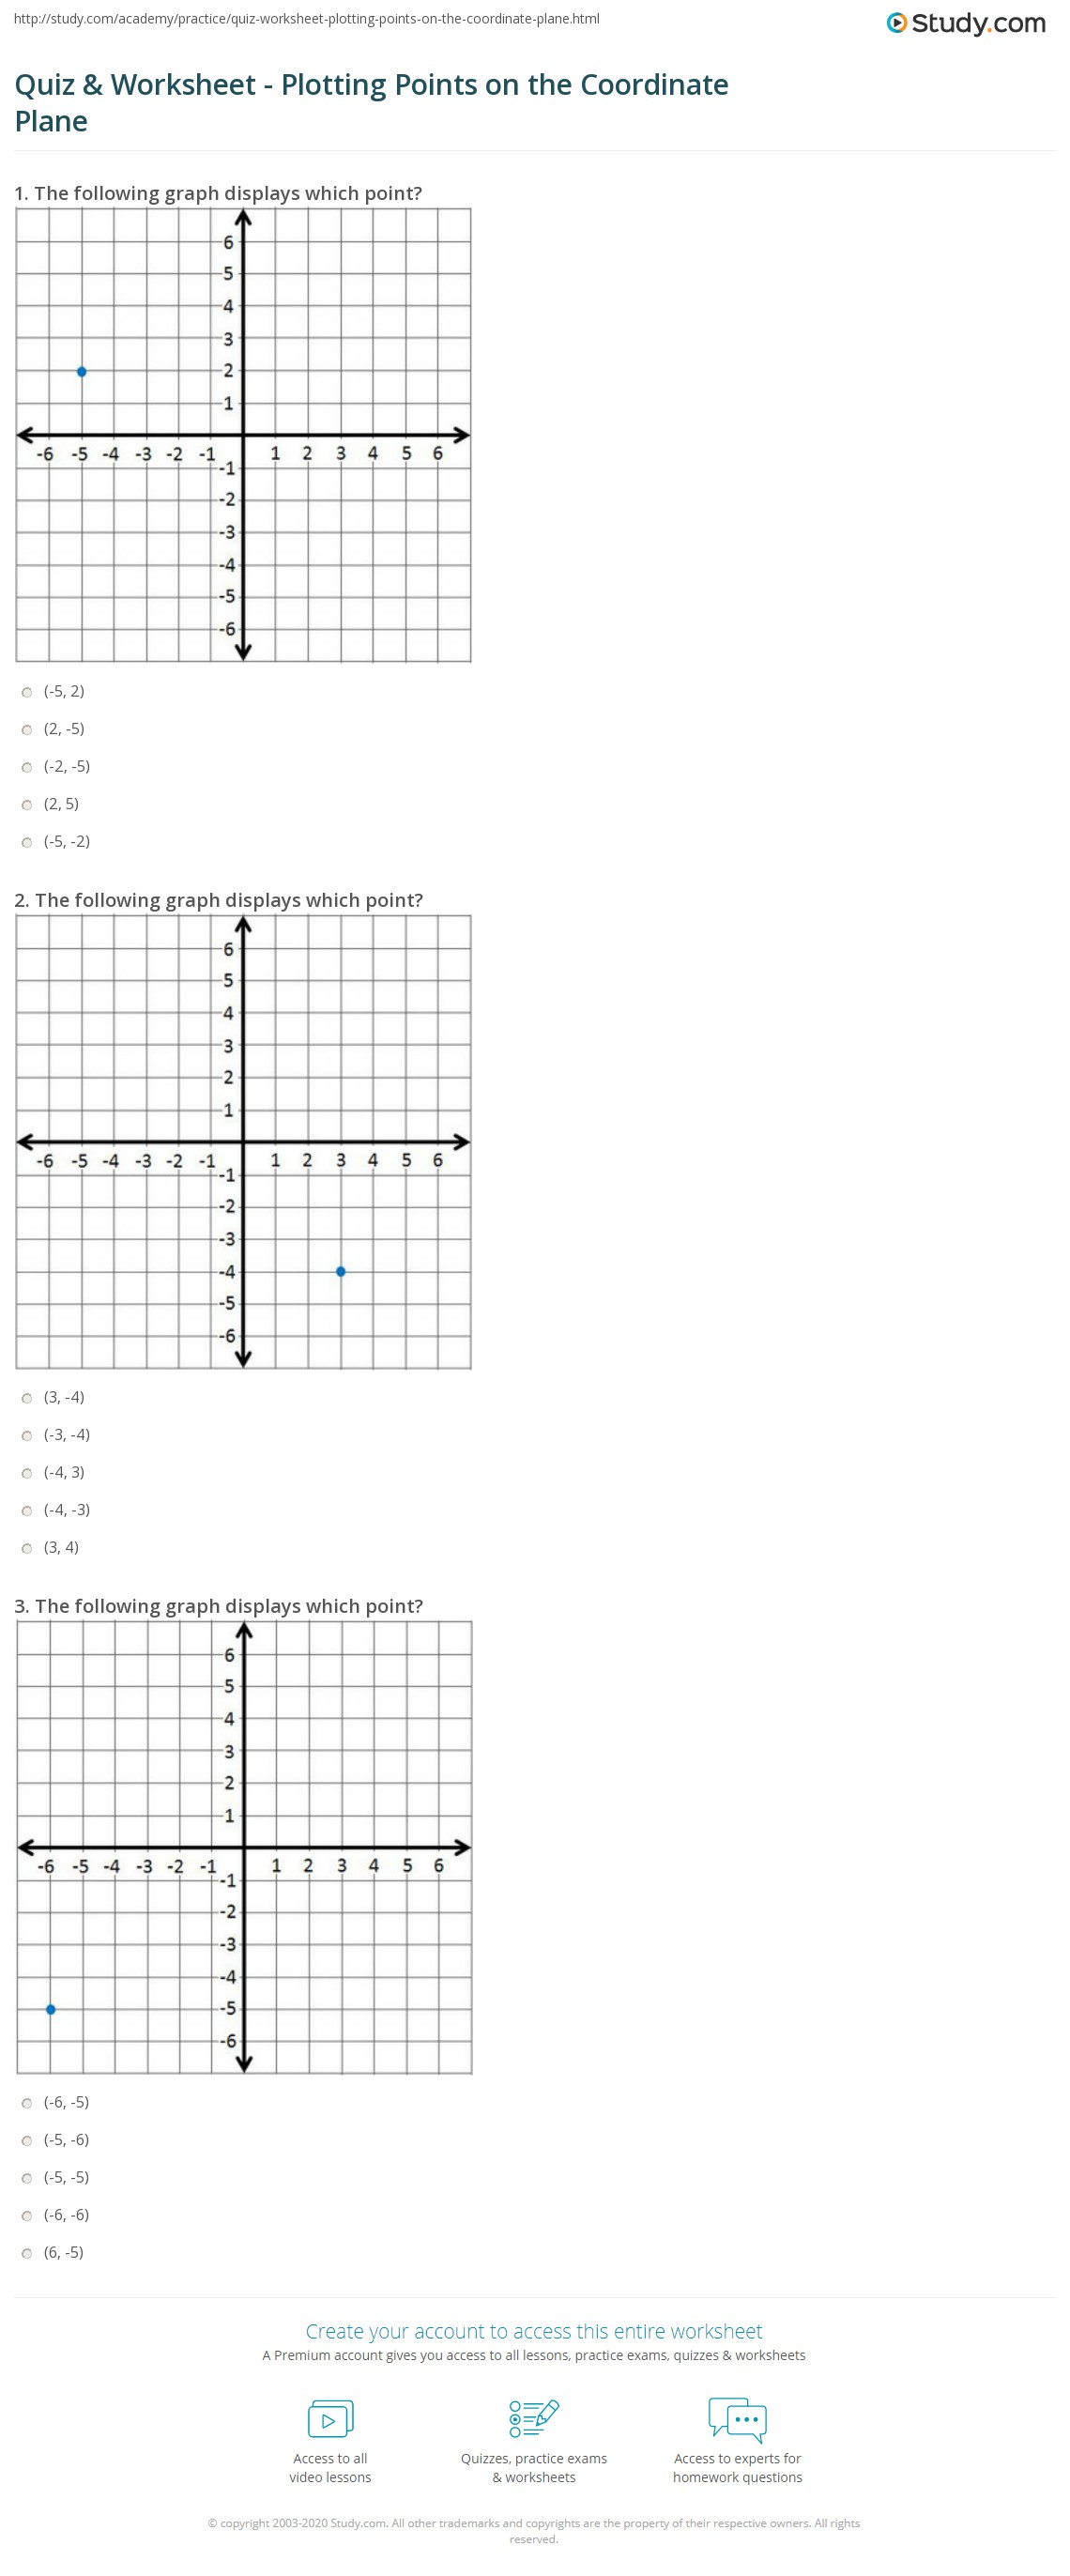 Free Worksheet Graphing Ordered Pairs Worksheet quiz worksheet plotting points on the coordinate plane study com print worksheet